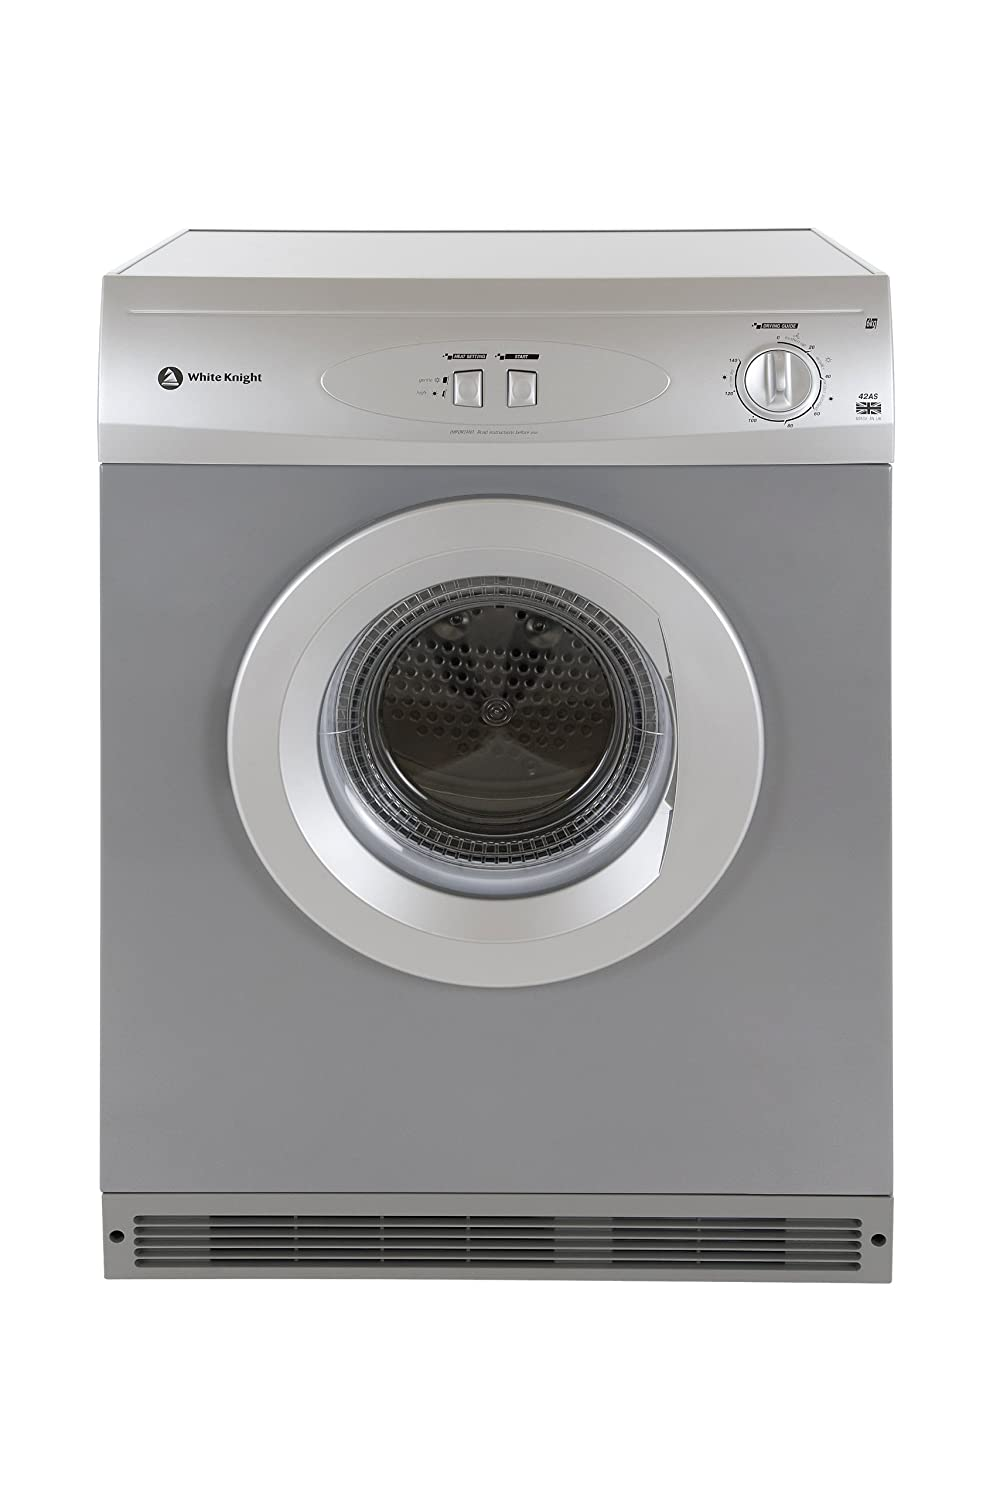 White Knight 42AS Vented Tumble Dryer, 6 Kg, Silver Crosslee